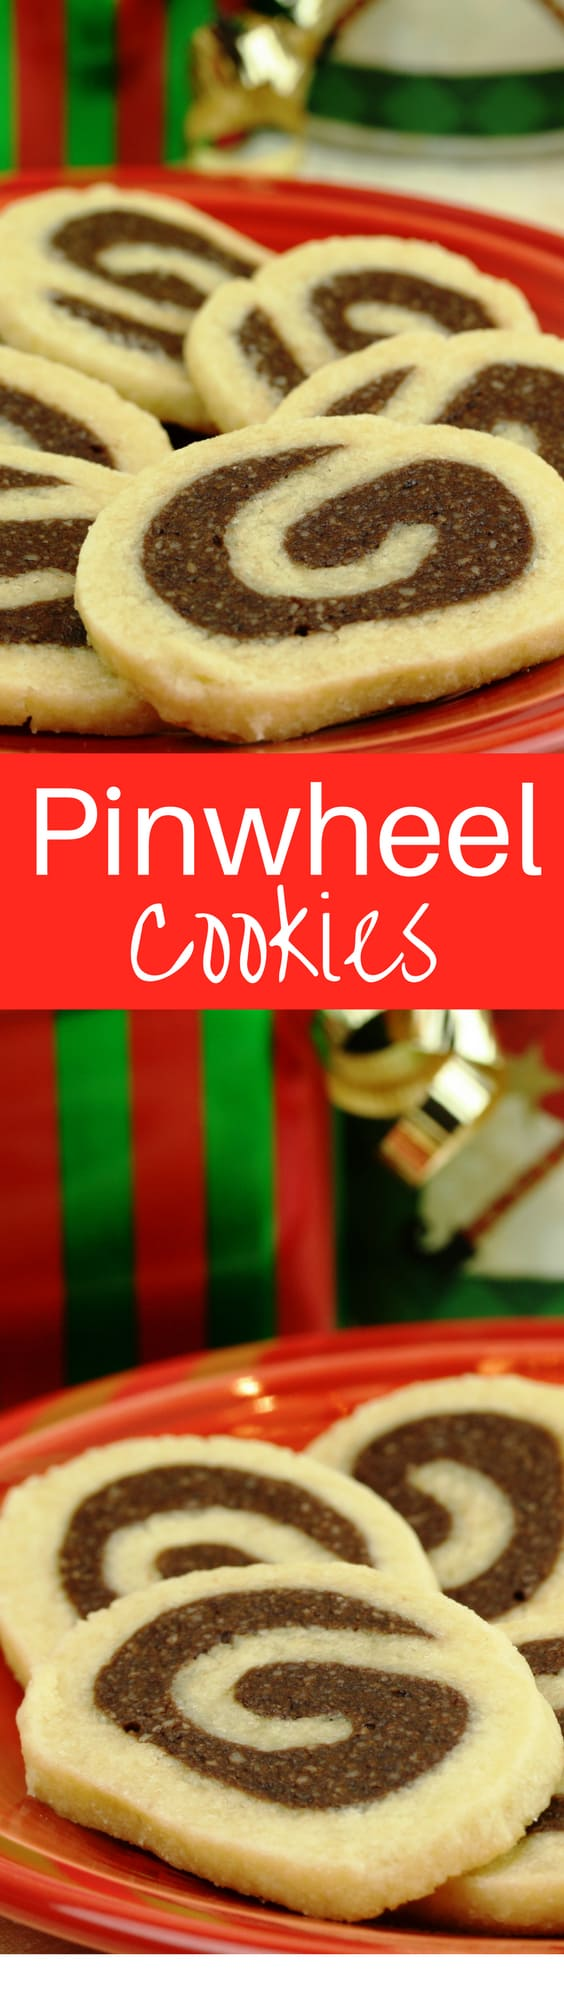 Pinwheel Cookies - an simple vanilla cookie with a lightly sweet nutty chocolate filling - an heirloom family recipe. www.savingdessert.com